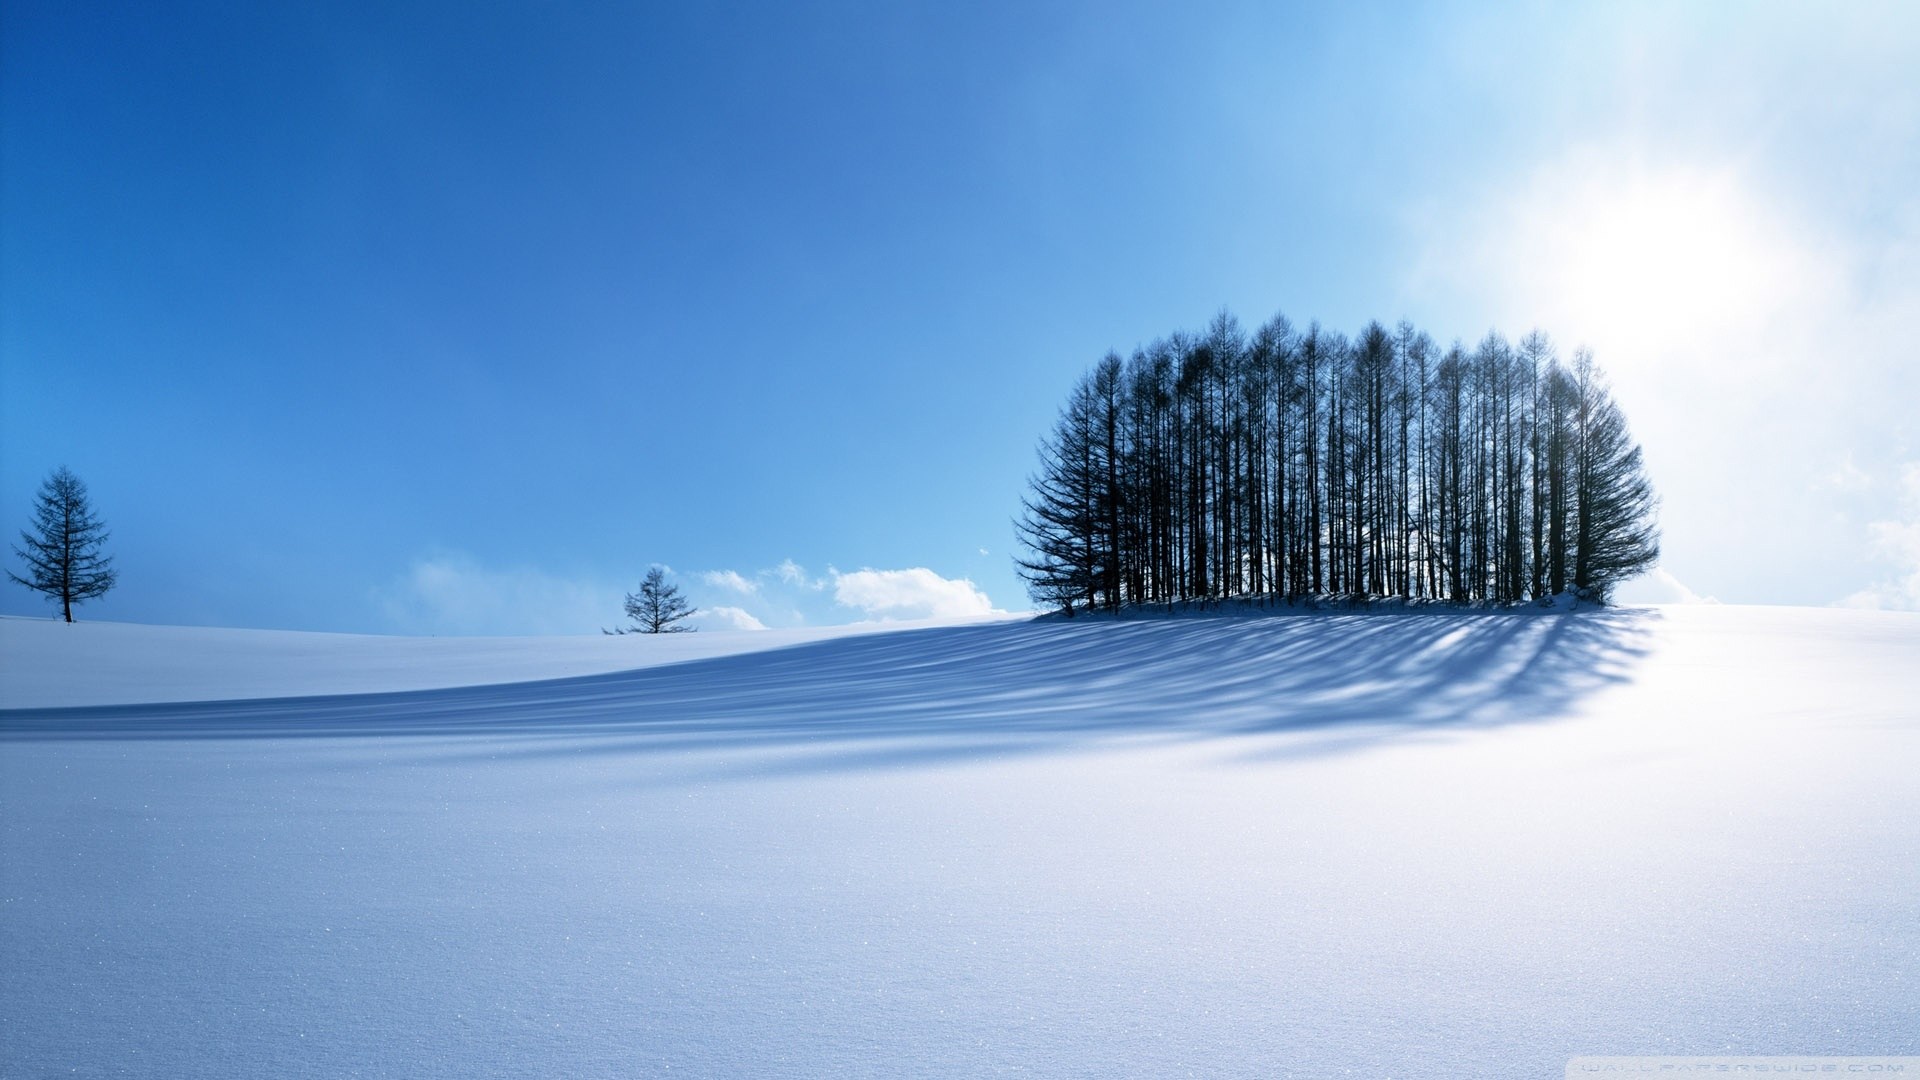 Landscapes winter snow Trees HD Wallpaper